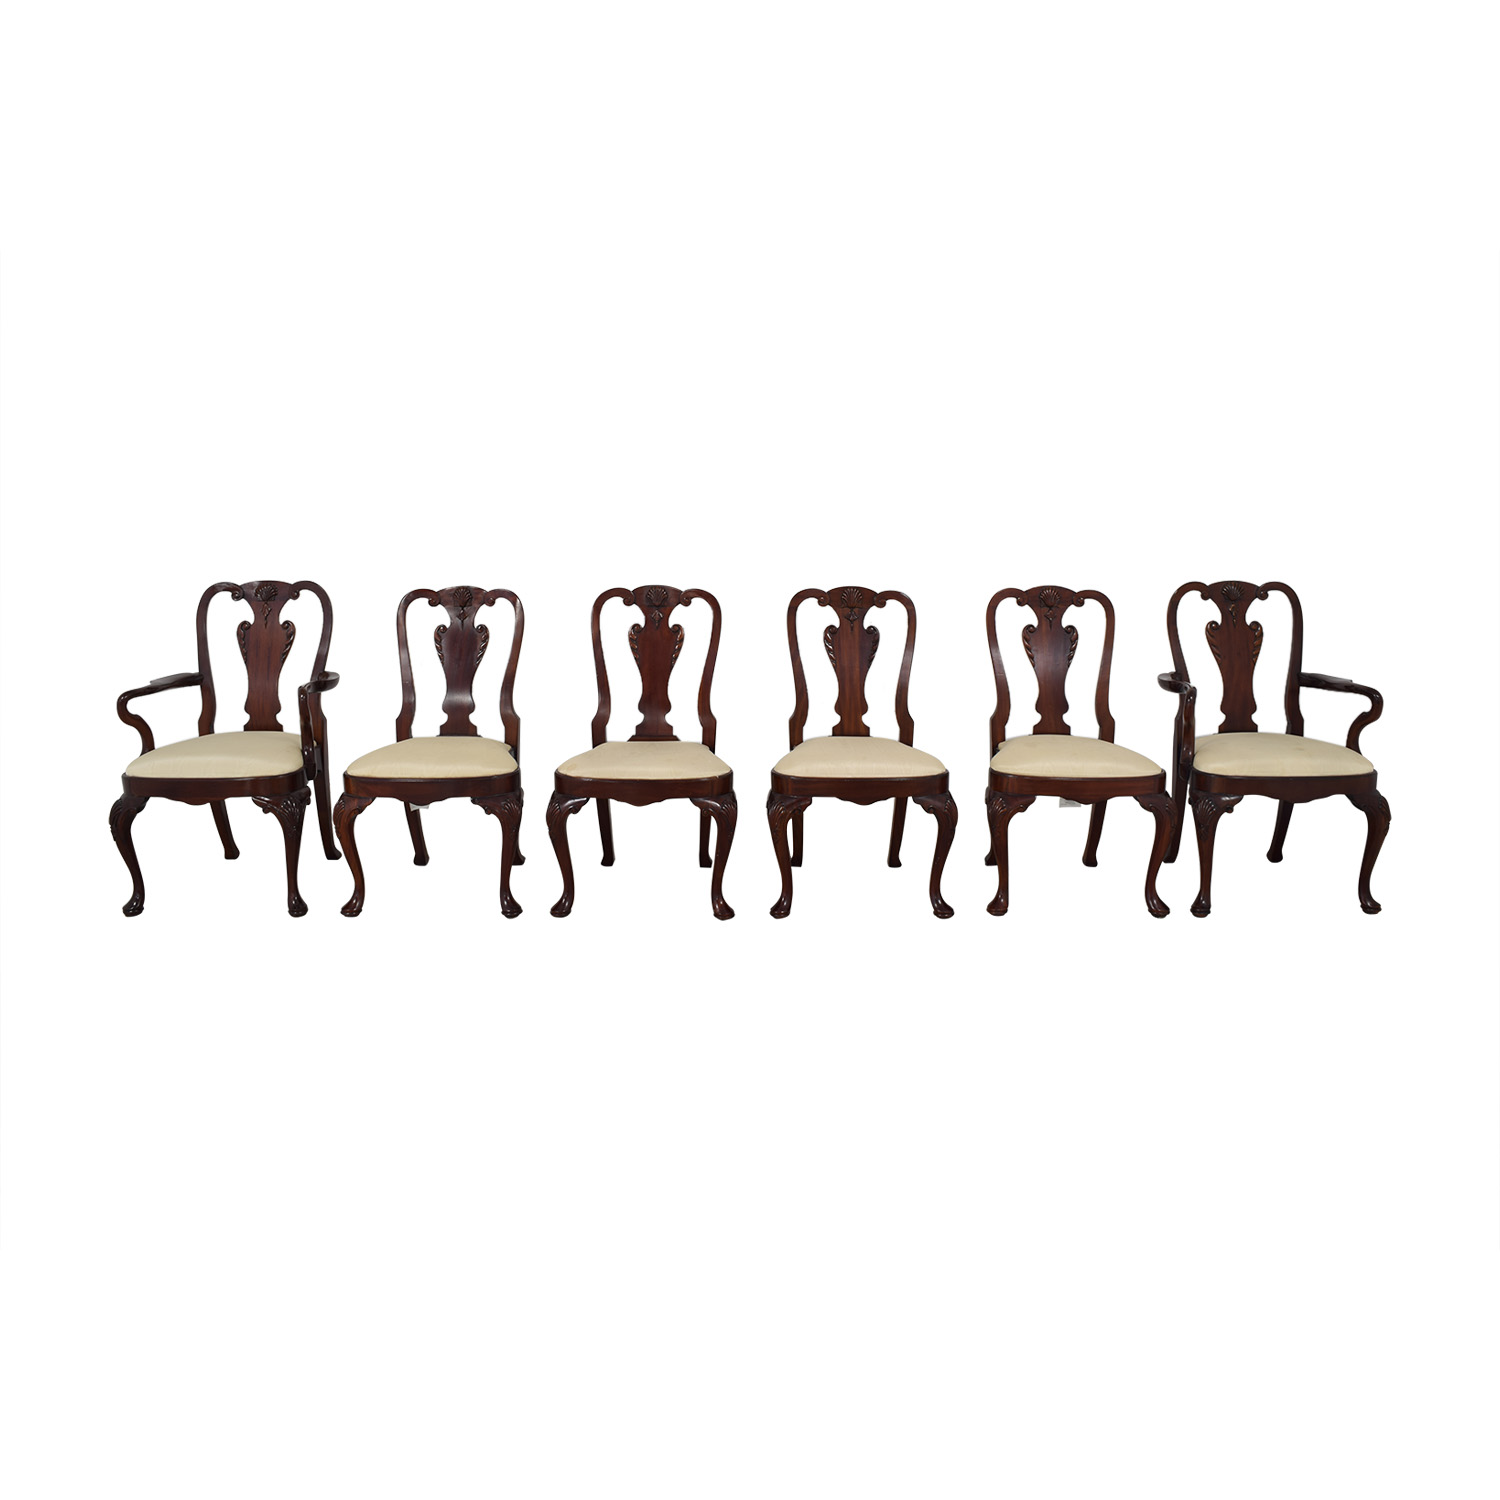 Maitland-Smith Maitland-Smith Dining Chairs pa